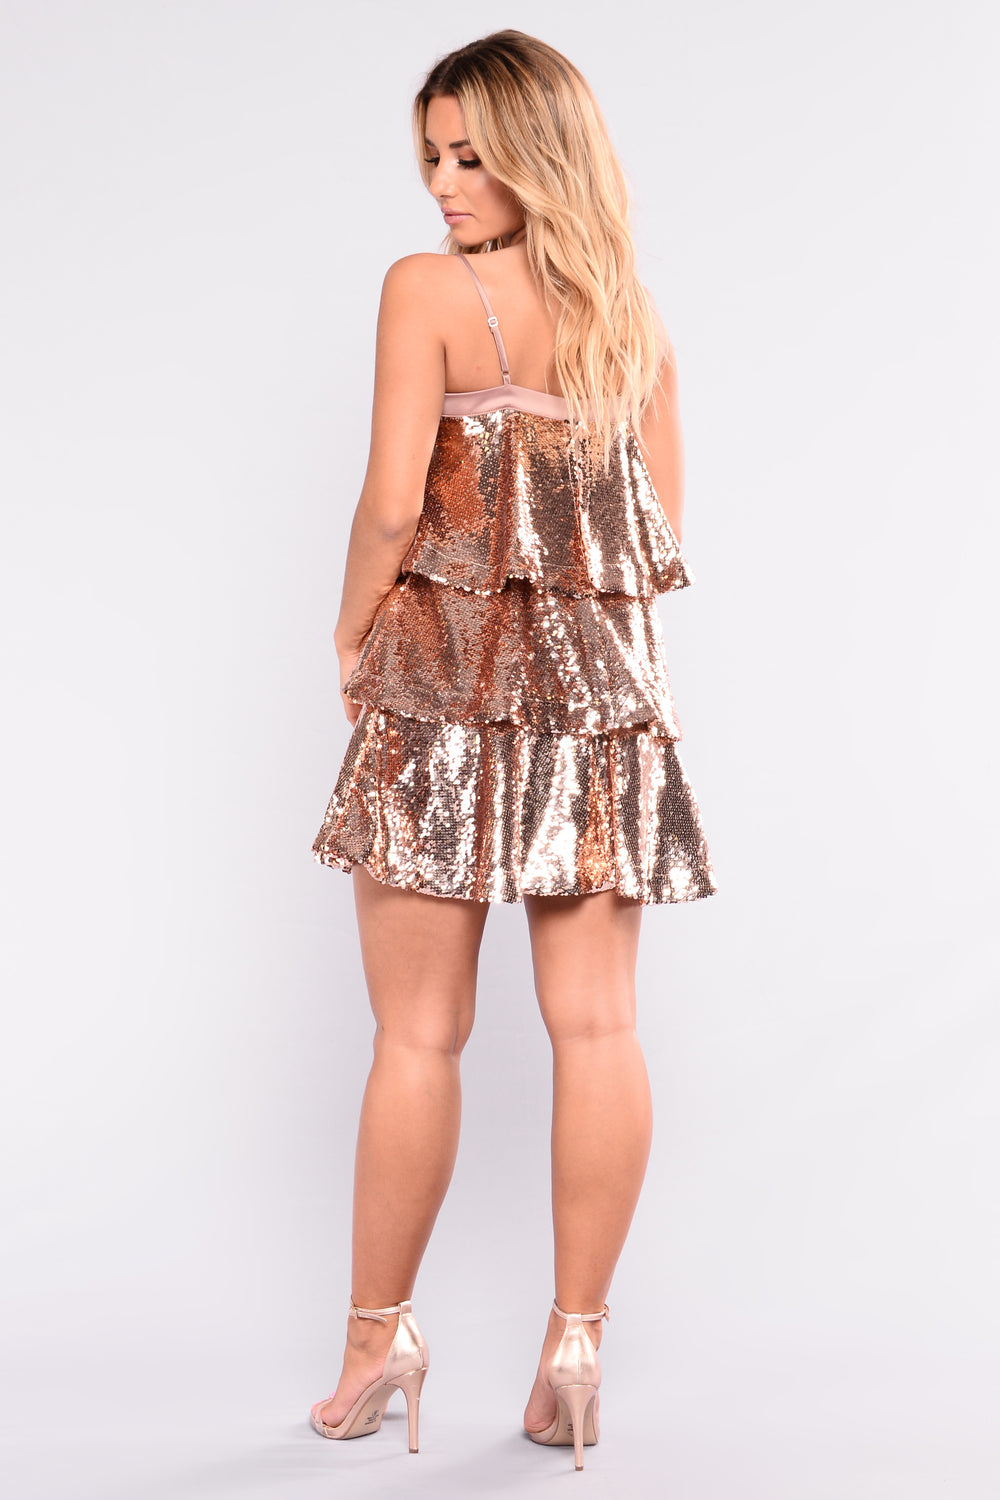 Strike It Rich Sequin Dress - Rose Gold